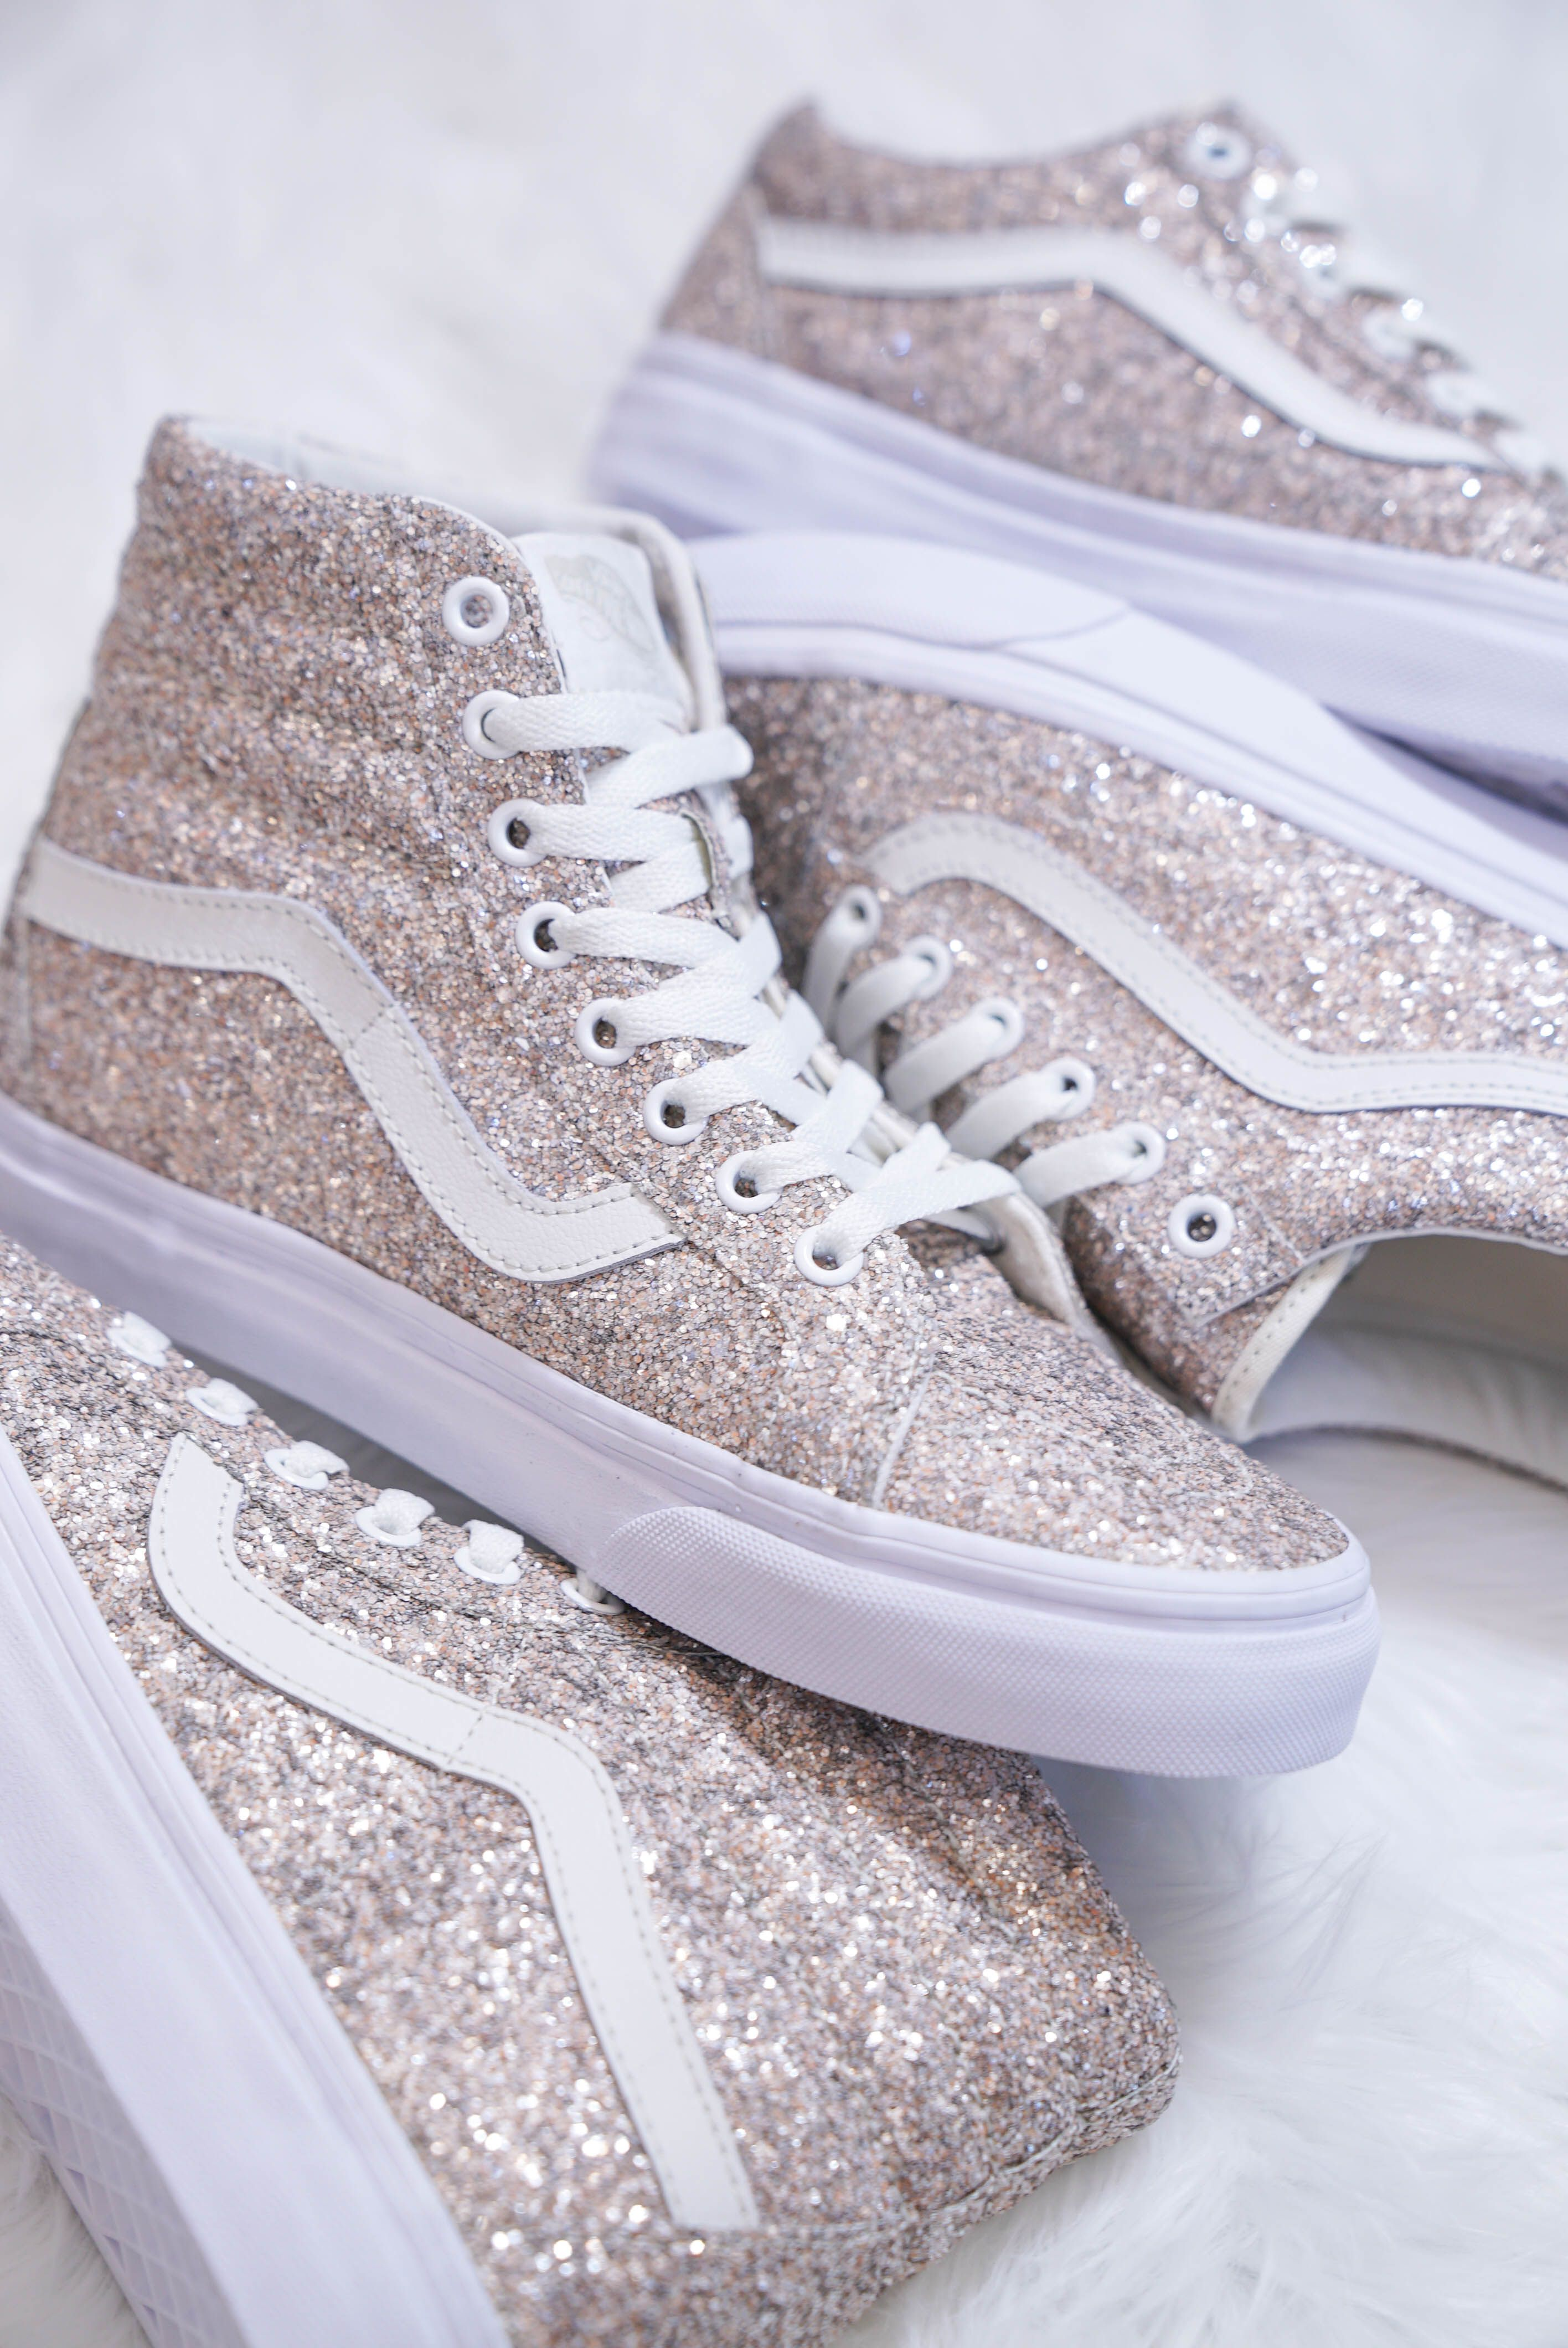 72018b8ac7cb1 Vans Sk8-Hi Chunky Glitter Skate Shoes | Clothes in 2019 ...